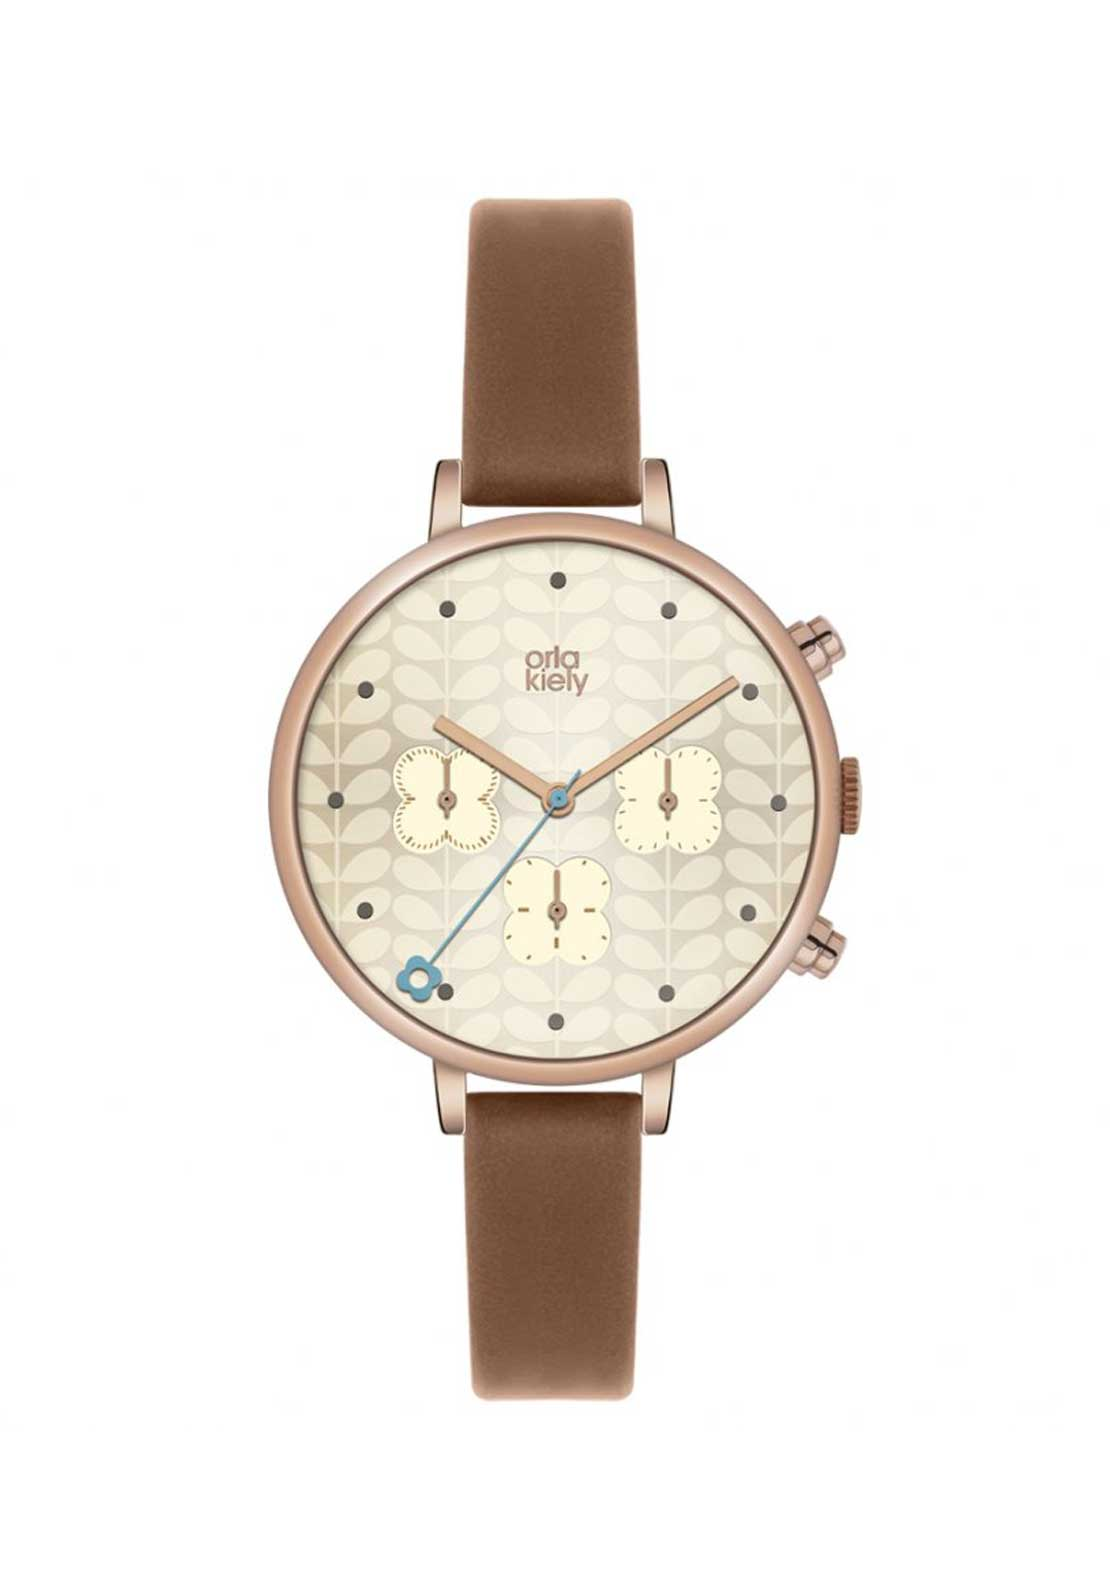 Orla Kiely Time Ladies Ivy Rose Gold Chronograph Watch with Brown Leather Strap